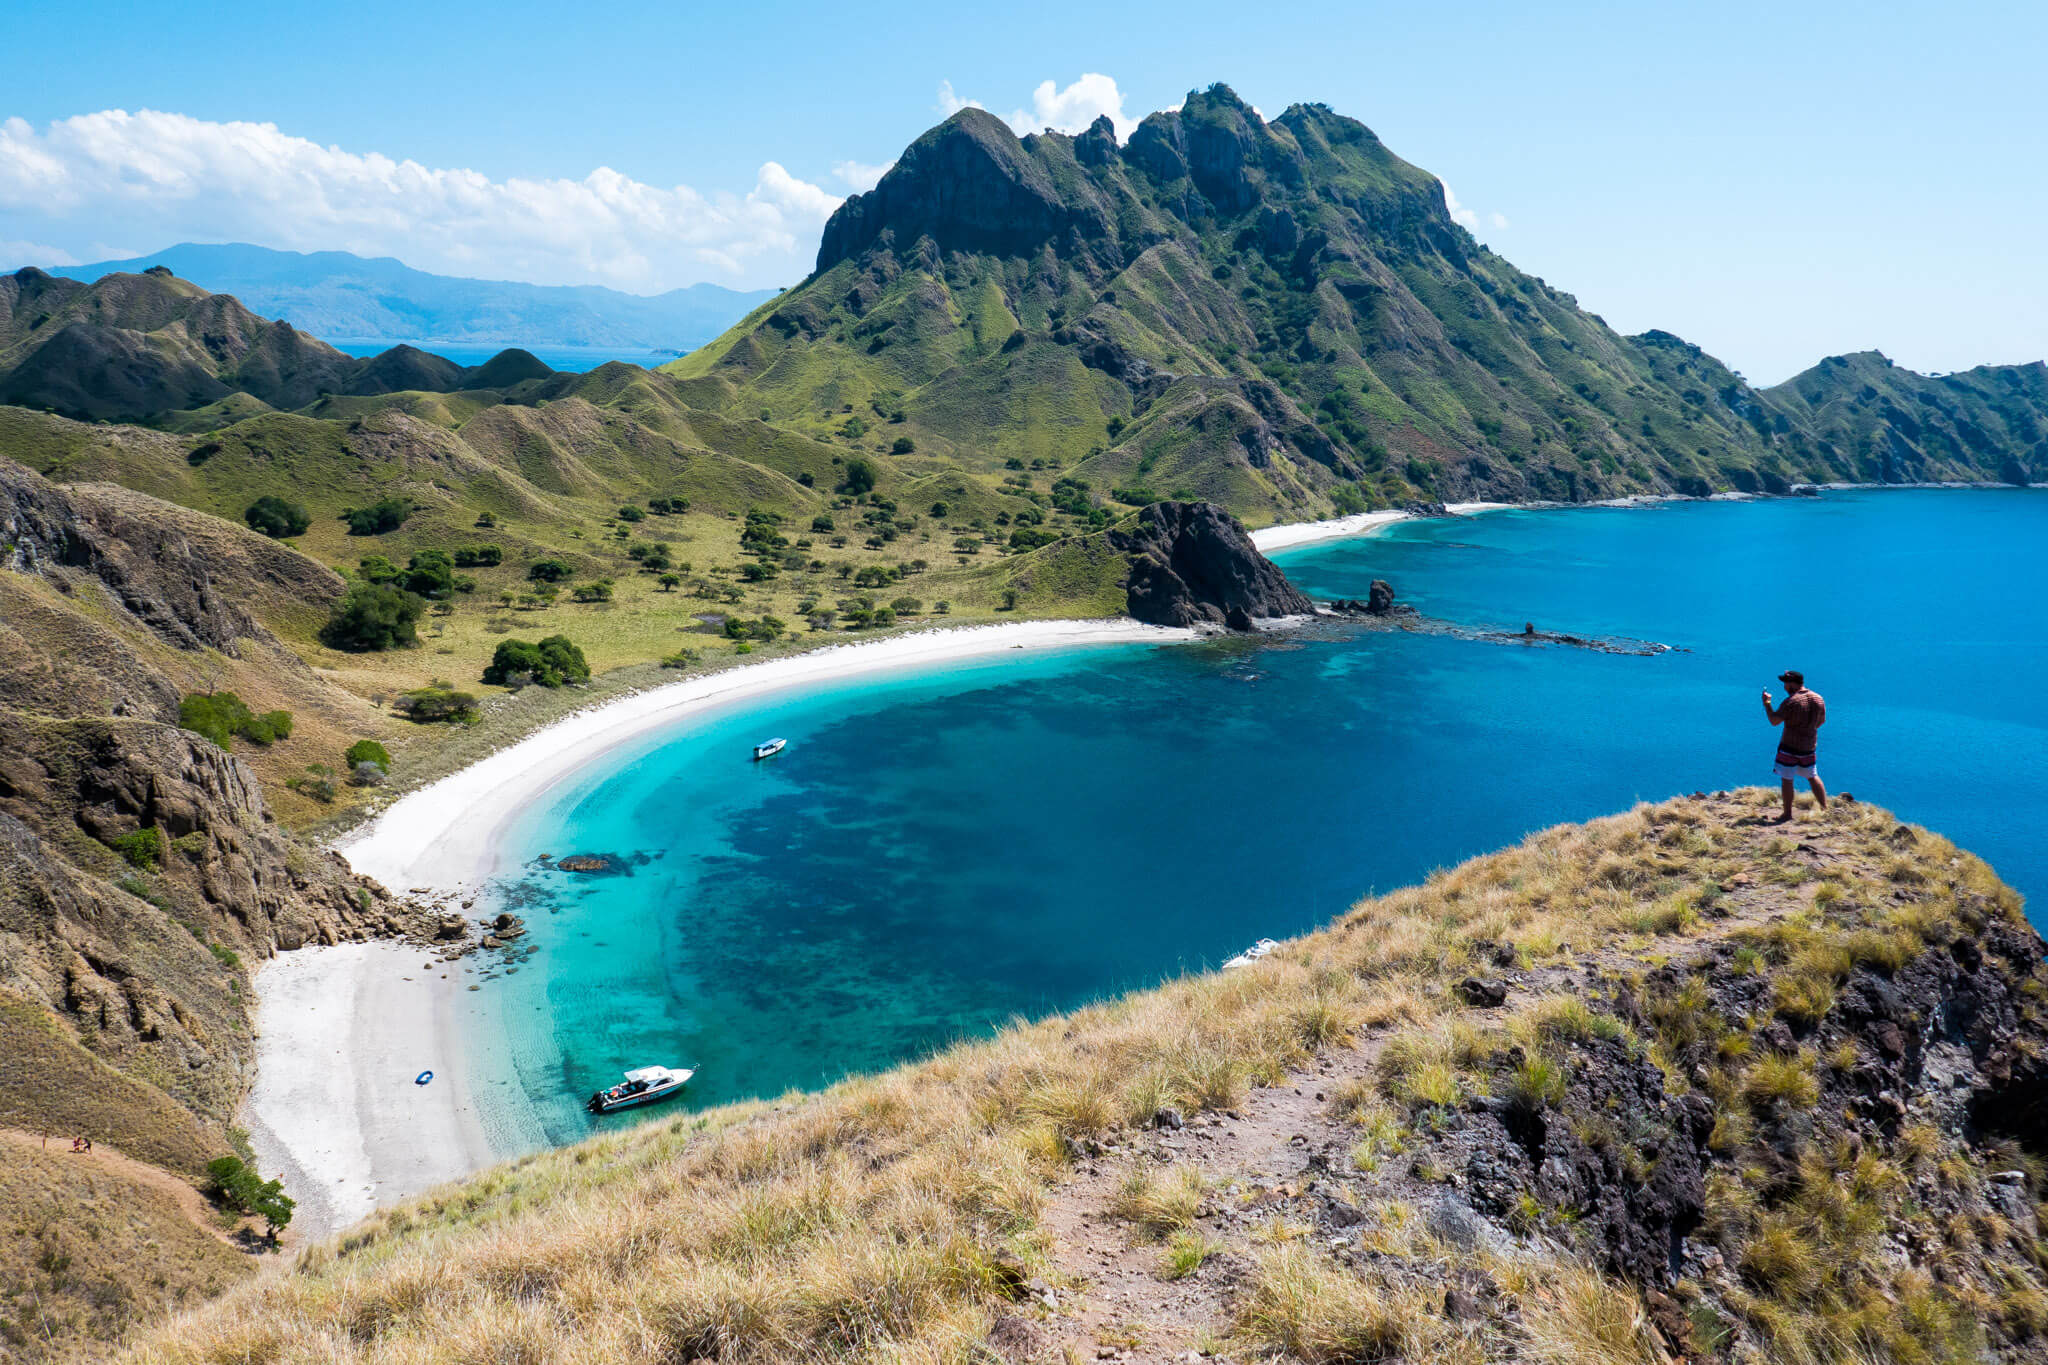 Hiking to the top of Padar Island, Komodo National Park